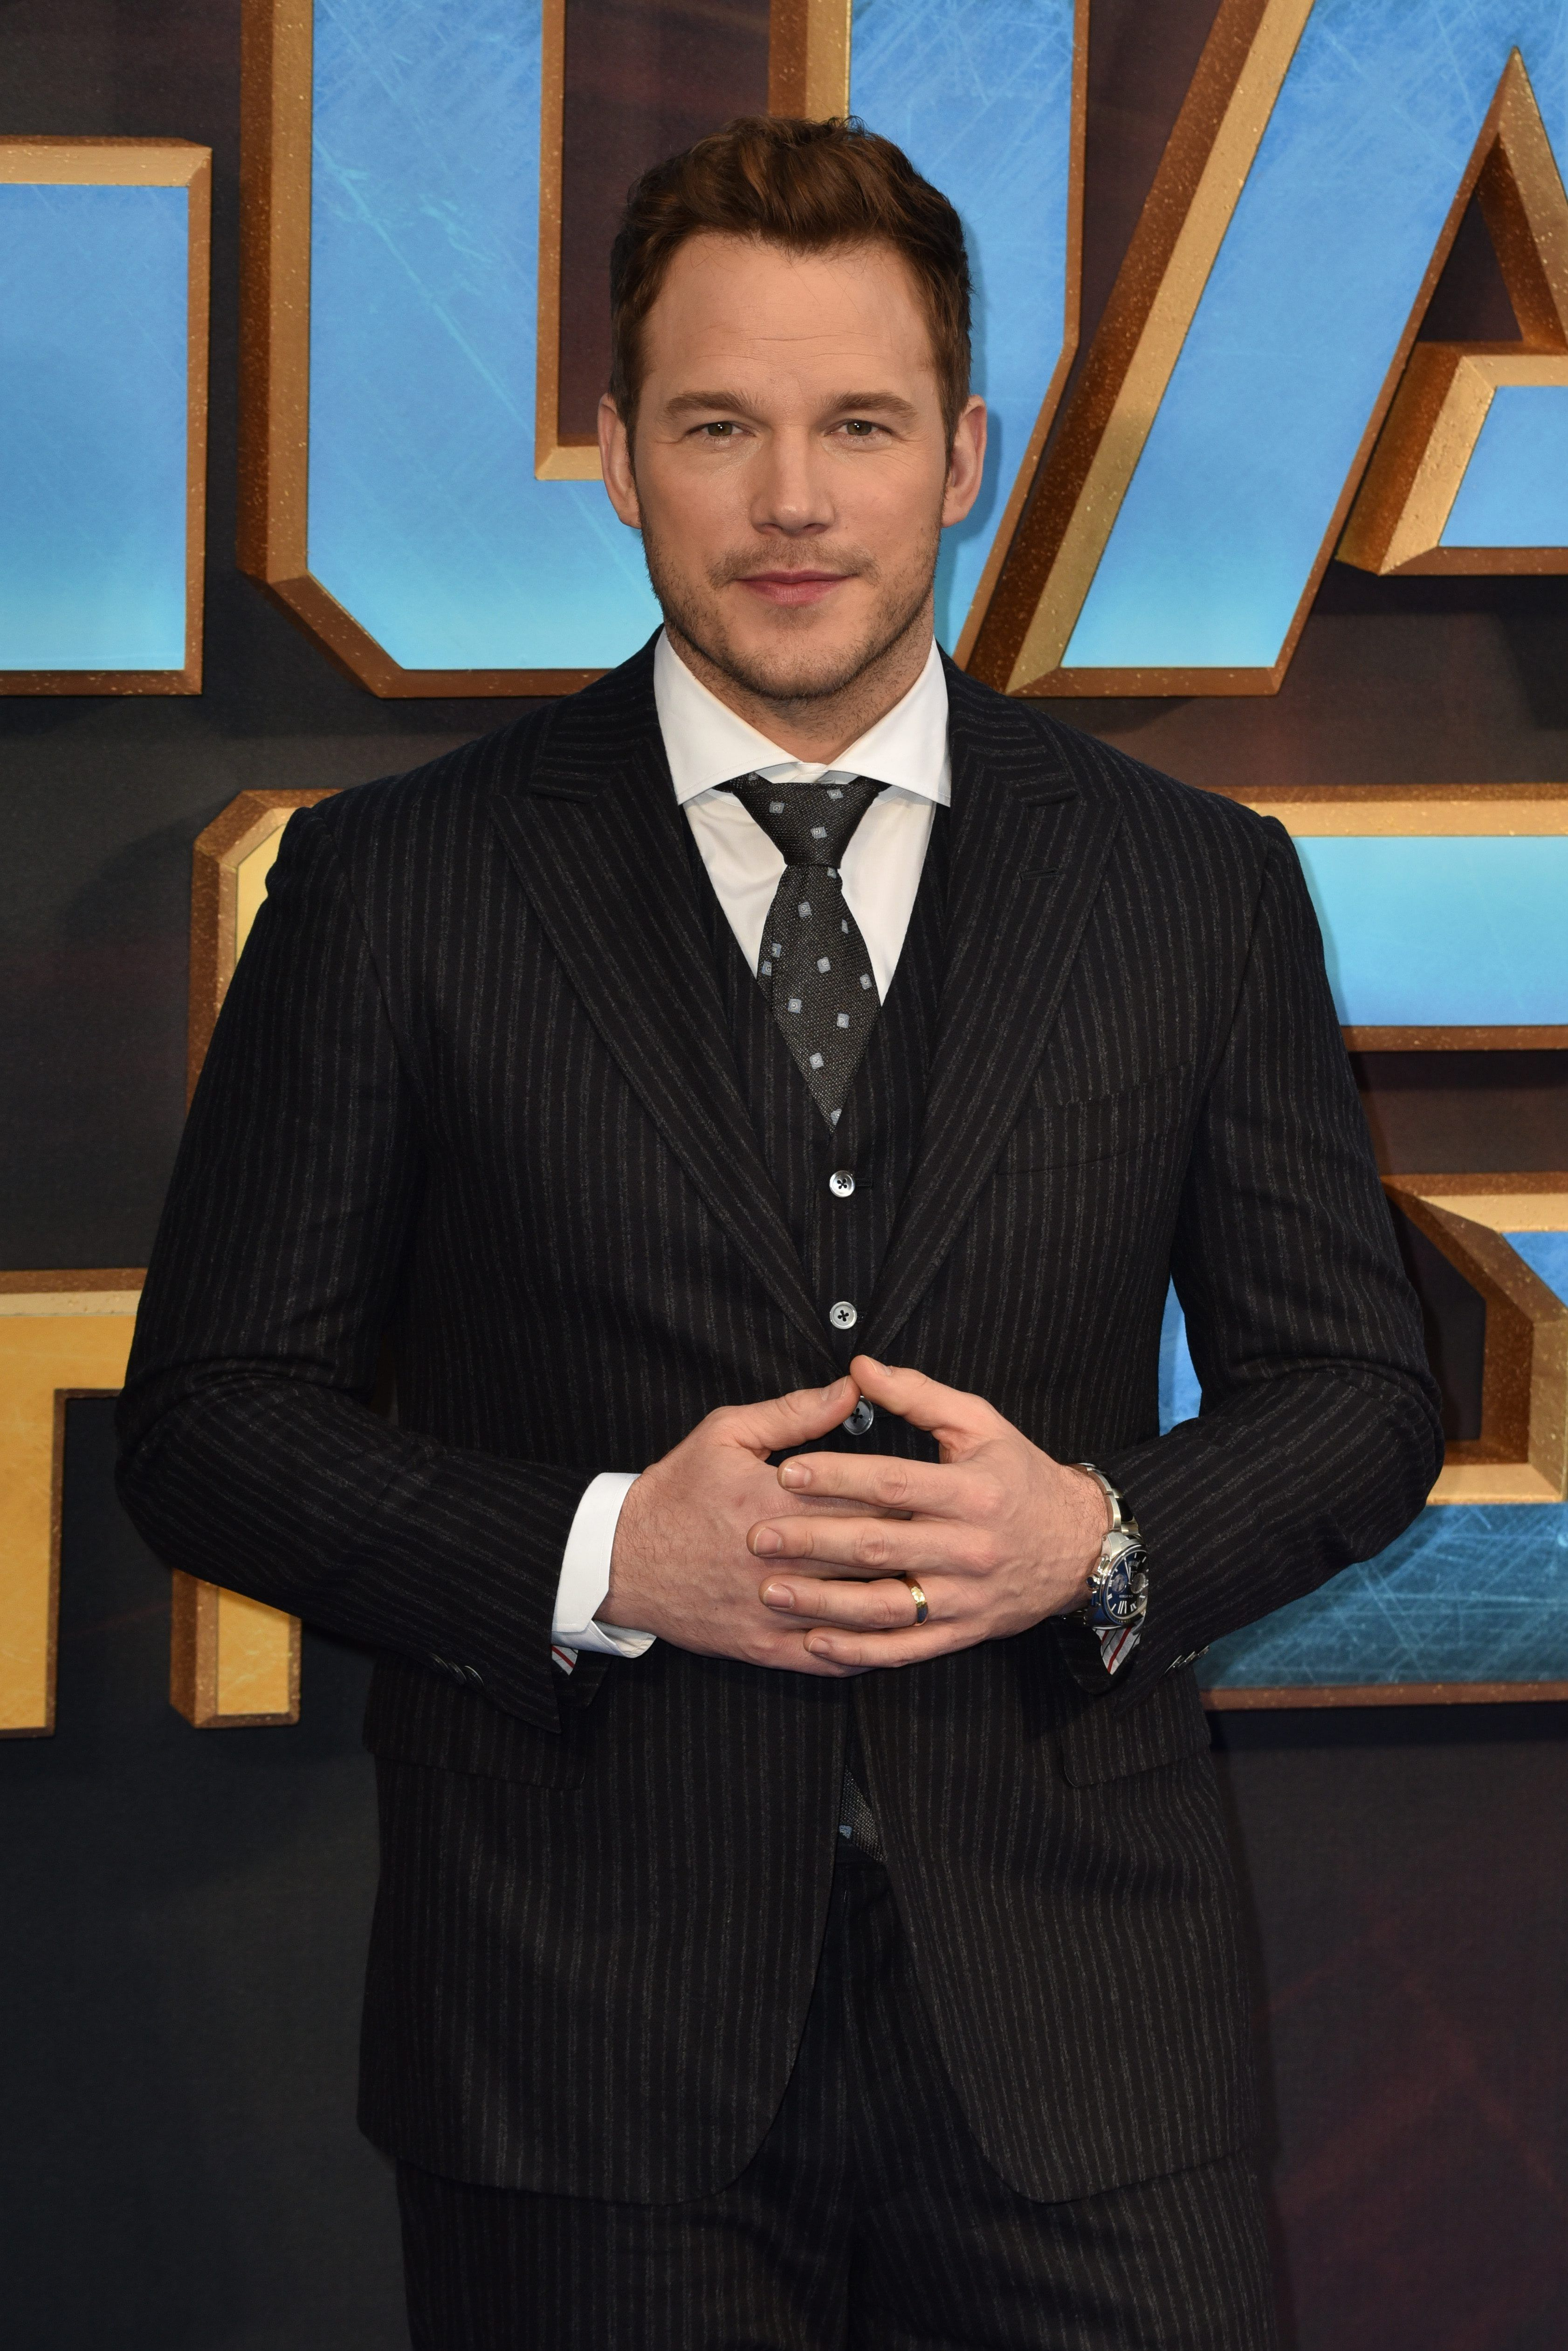 Chris Pratt Warns Female Fans After 'Potential Predator' Sets Up Fake Account